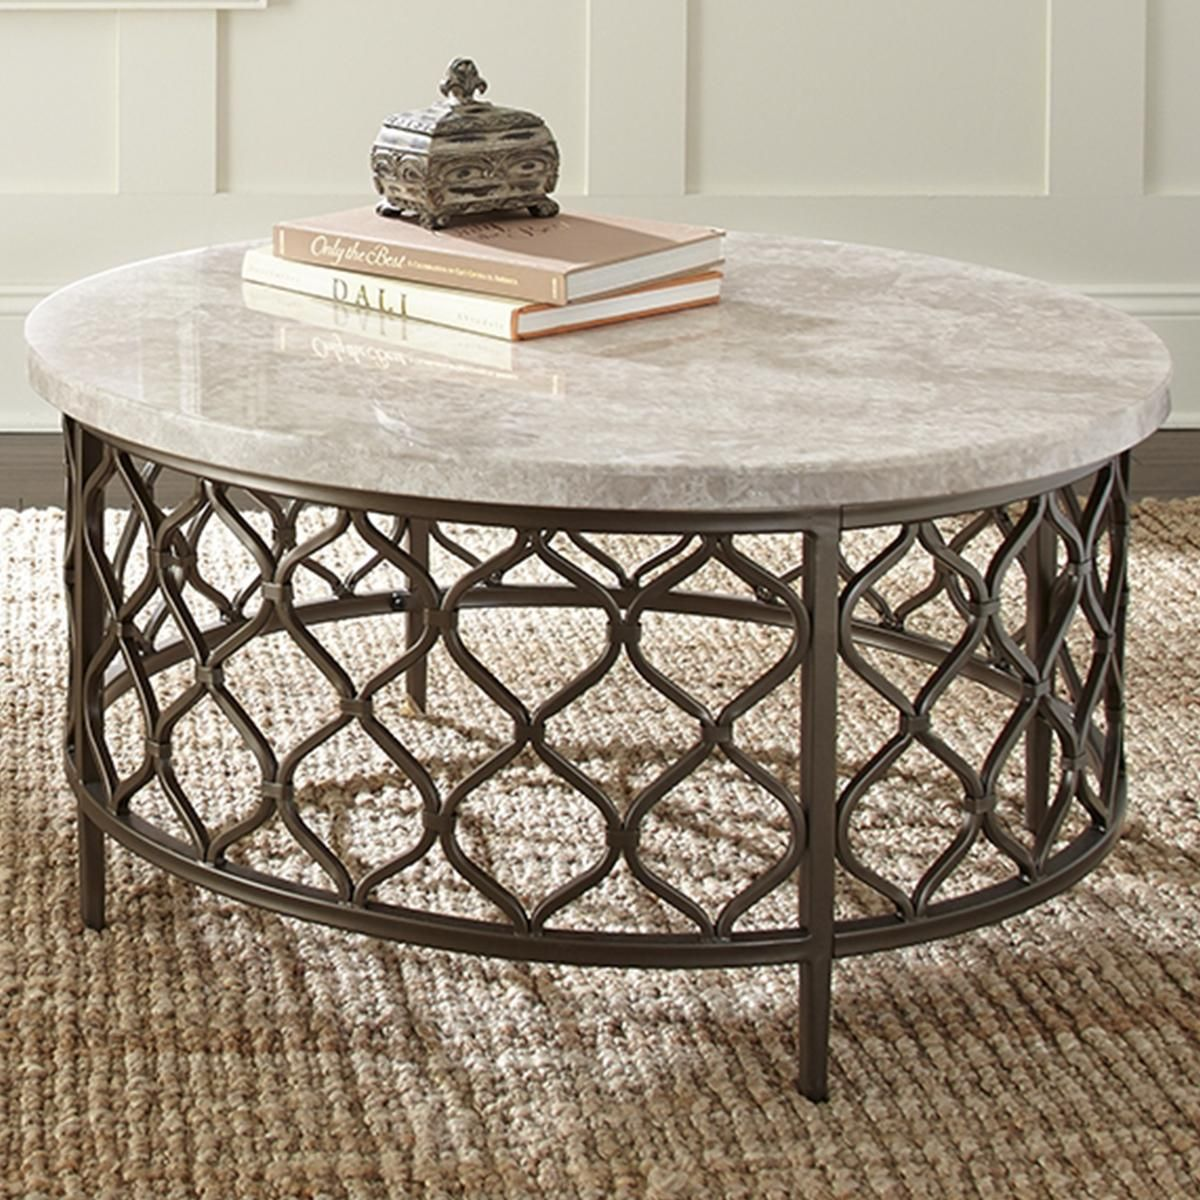 Product Main Image 0 Stone Coffee Table Coffee Table Round Coffee Table [ 1200 x 1200 Pixel ]